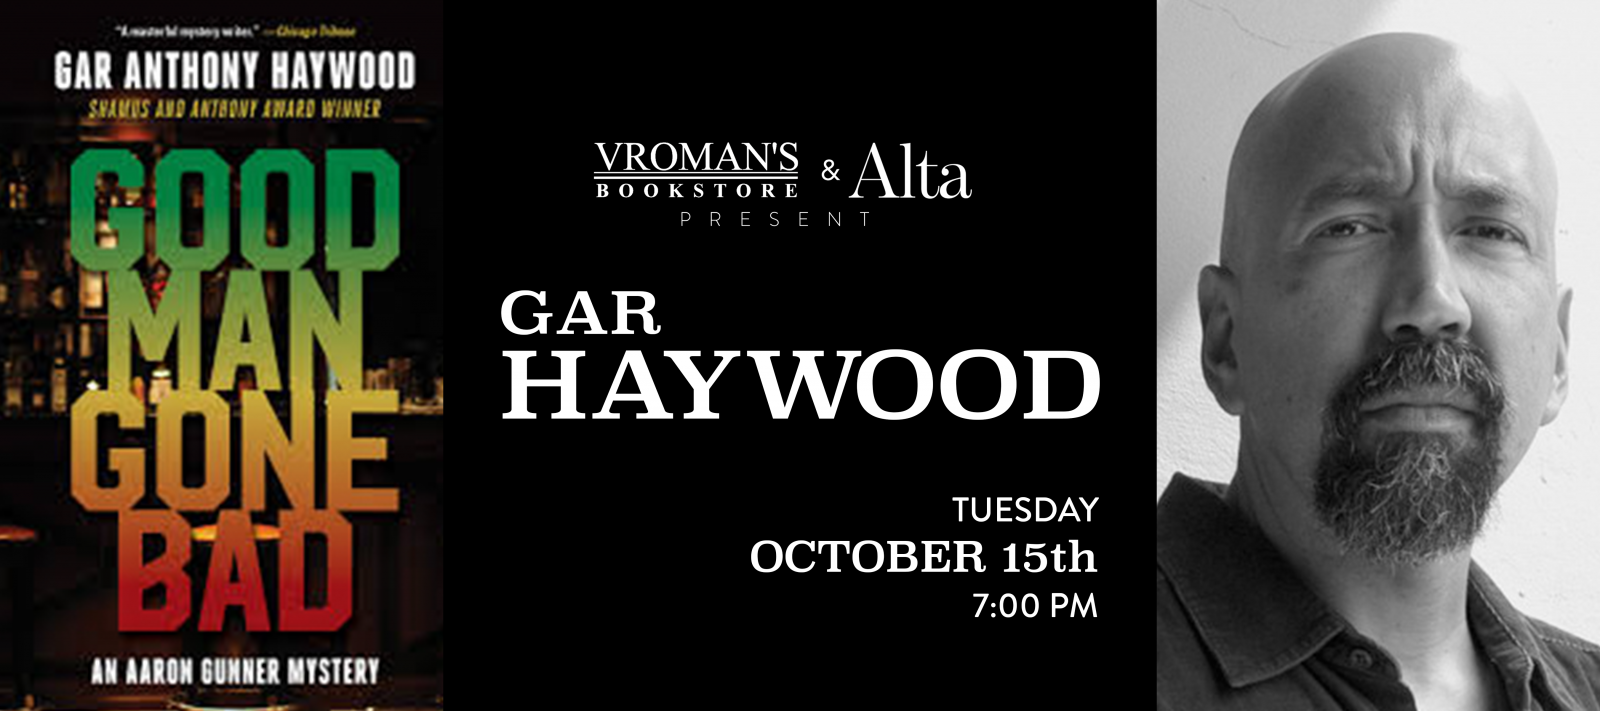 Gar Anthony Haywood book signing Tuesday October 15 at 7pm